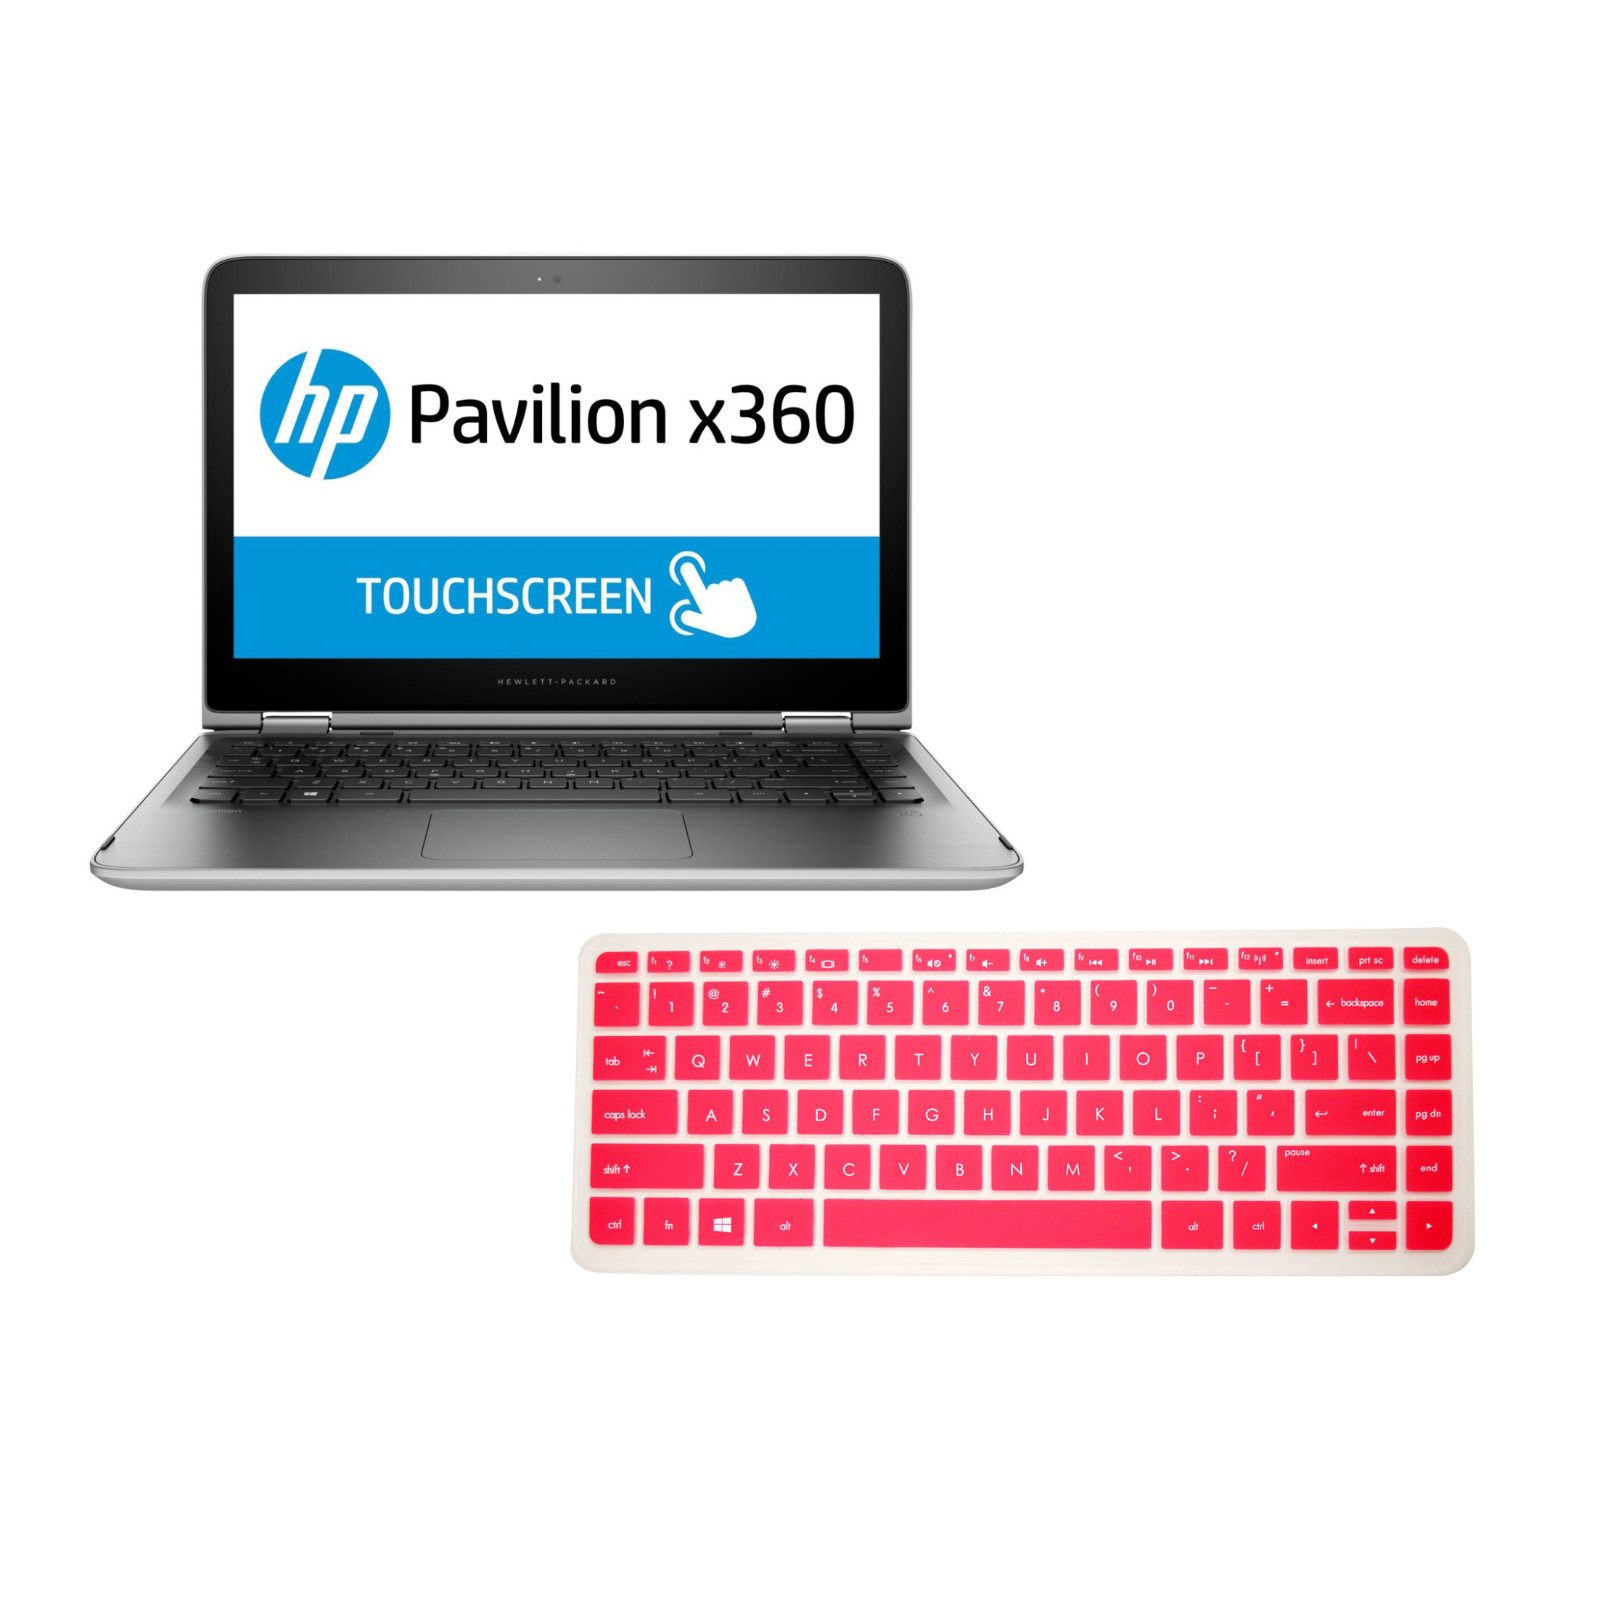 """PcProfessional Hot Pink Ultra Thin Silicone Gel Keyboard Cover for HP Pavilion x360 13.3"""" 13t s020nr s067nr [2015 Model] Laptop (Please Compare Keyboard Layout and Model)"""